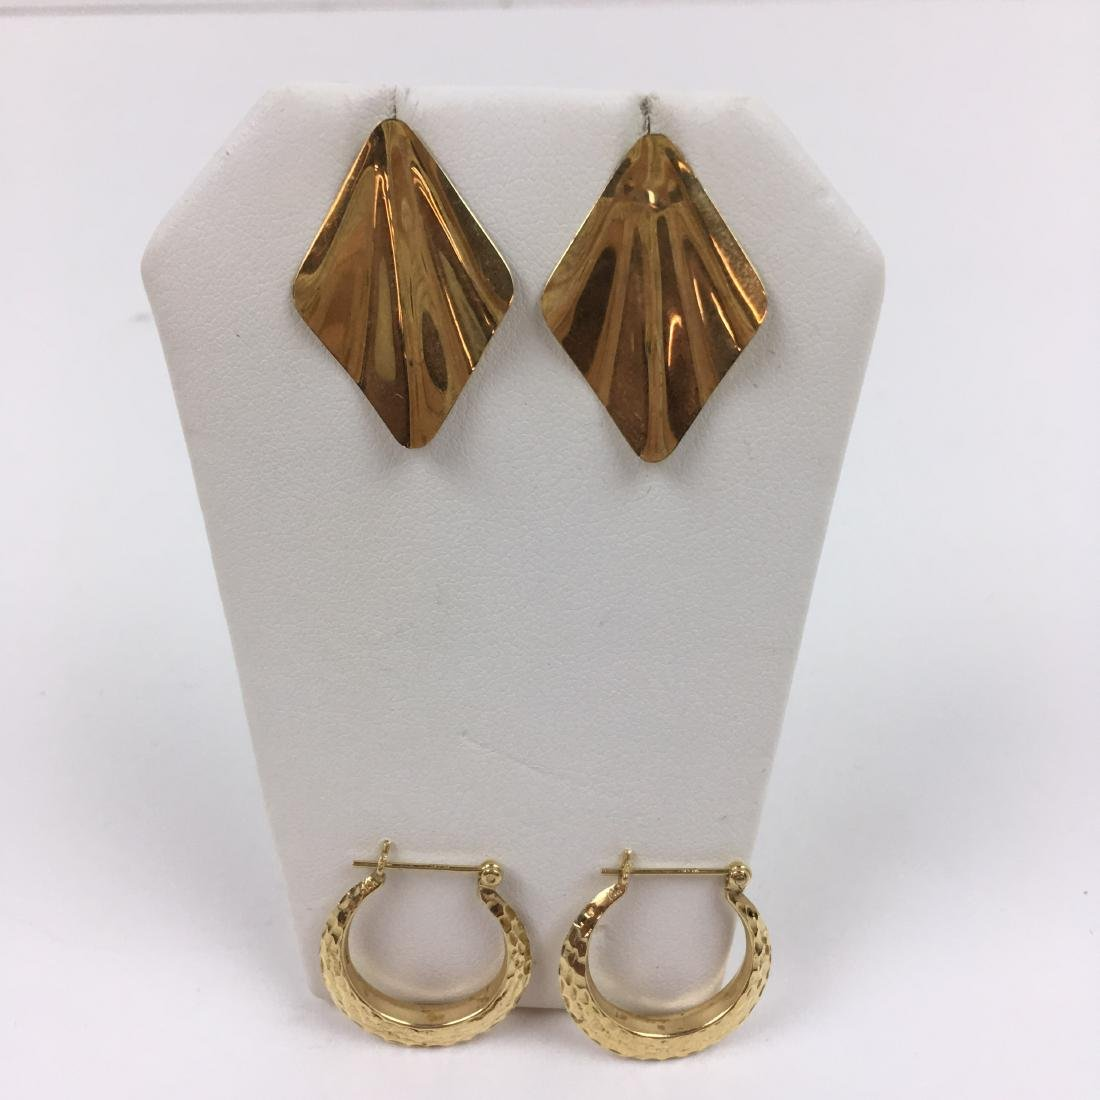 2 PRS OF 14K YELLOW GOLD EARRINGS